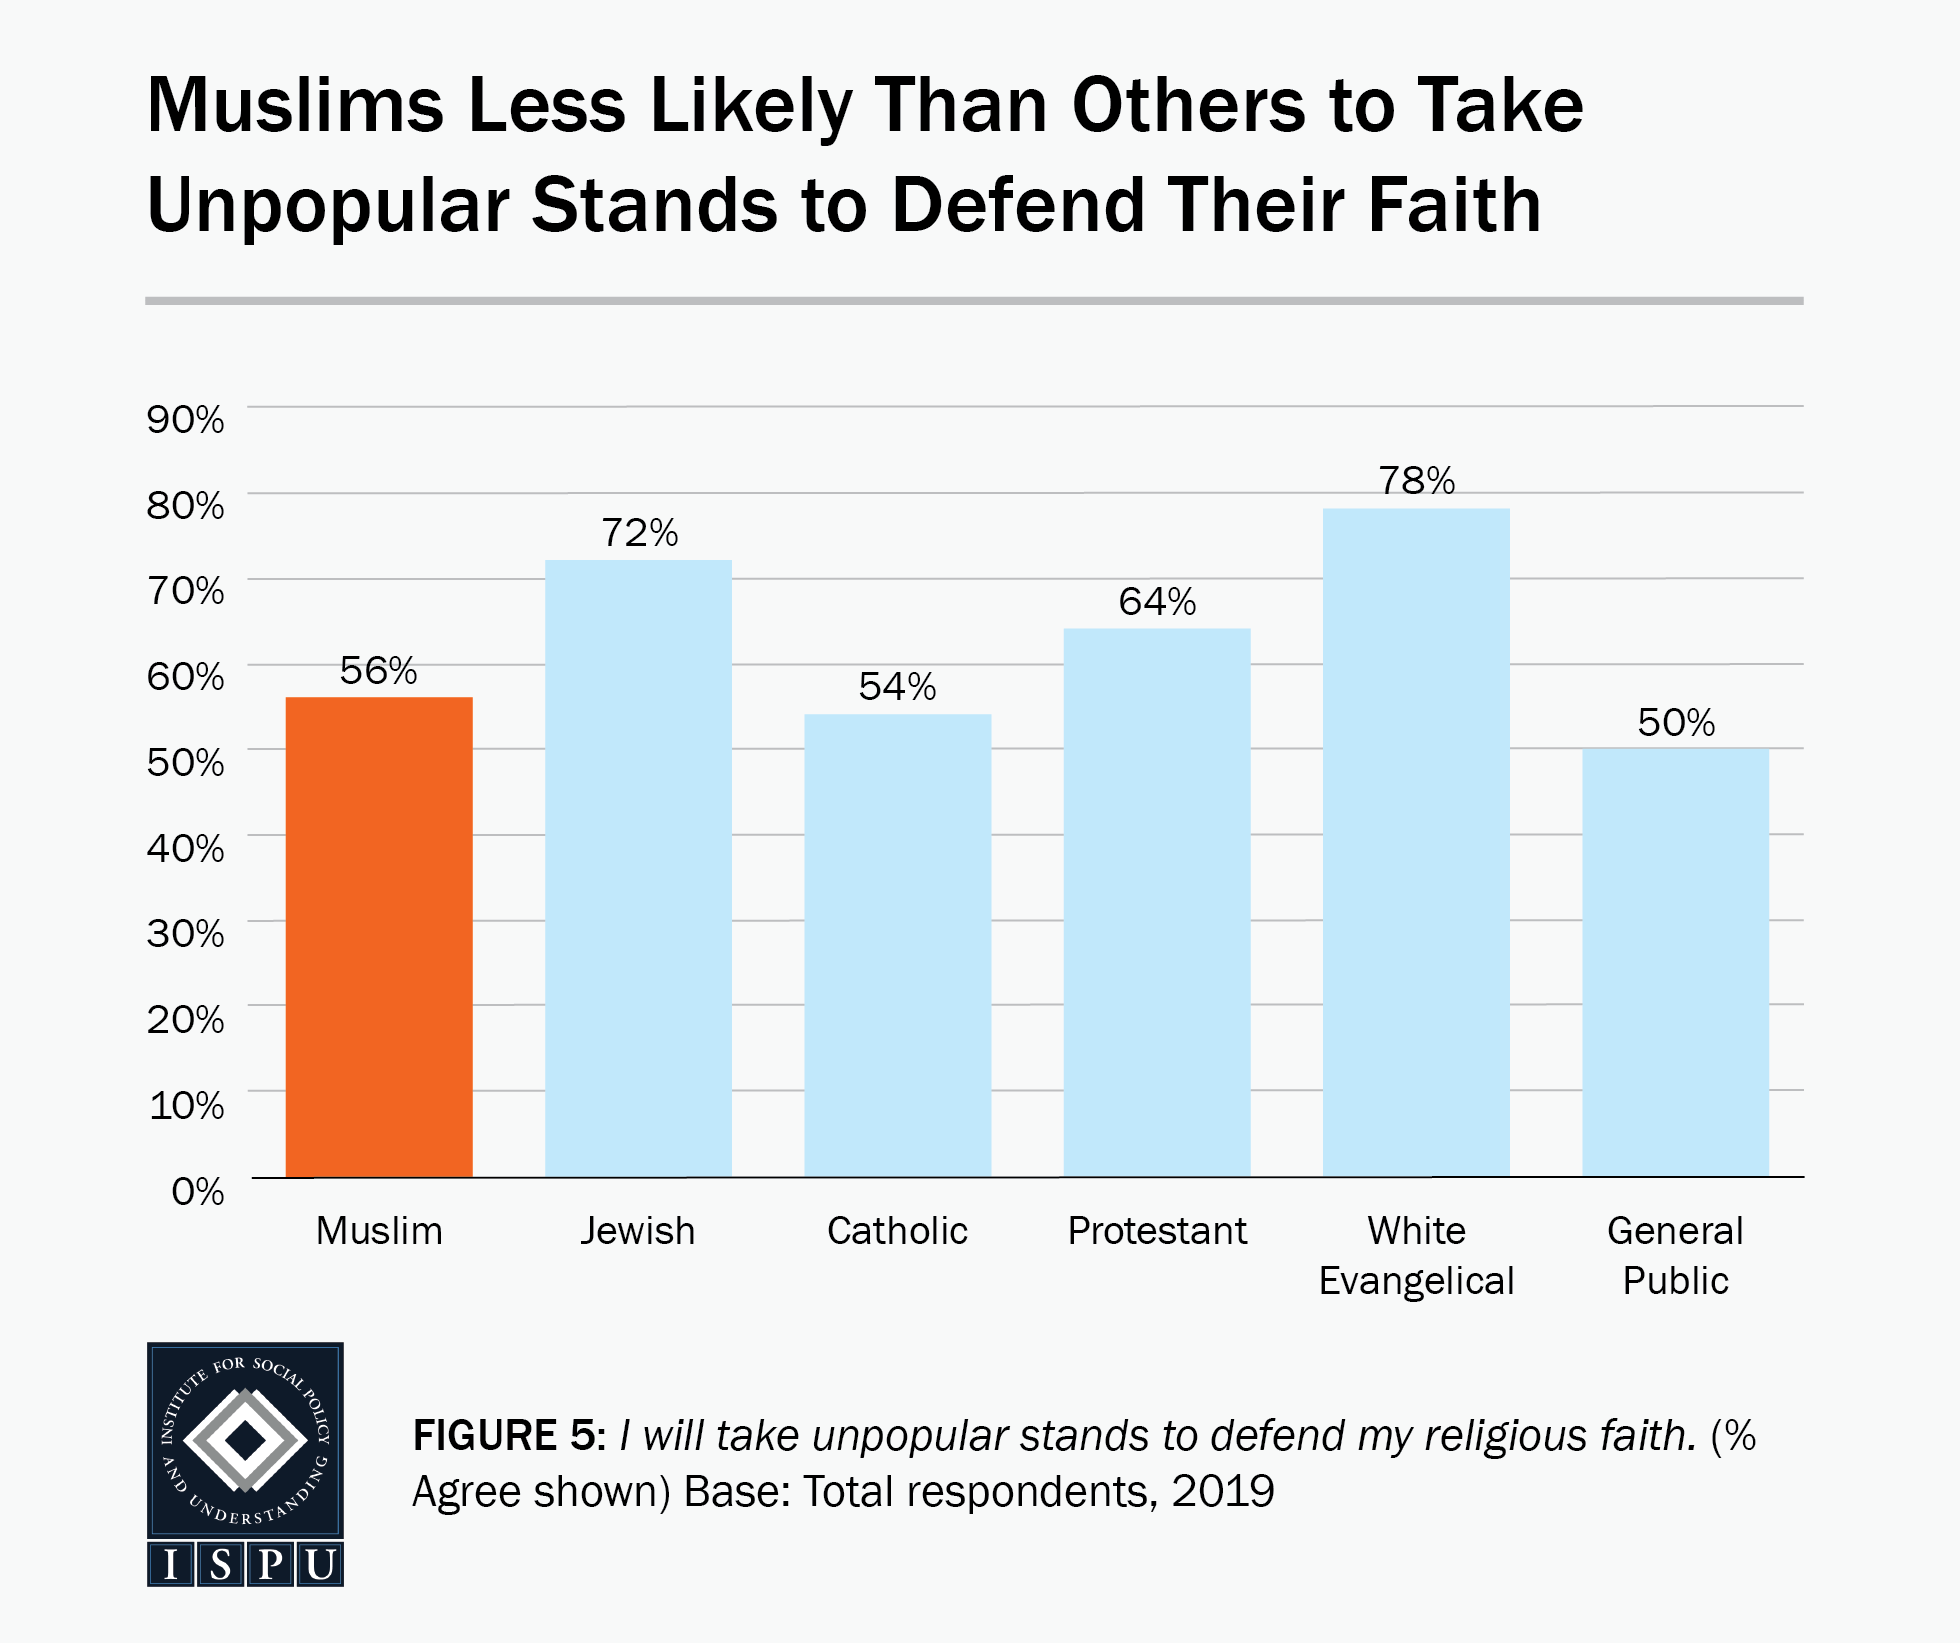 Figure 5: A bar graph showing that Muslims (56%) are less likely than others to take unpopular stands to defend their faith